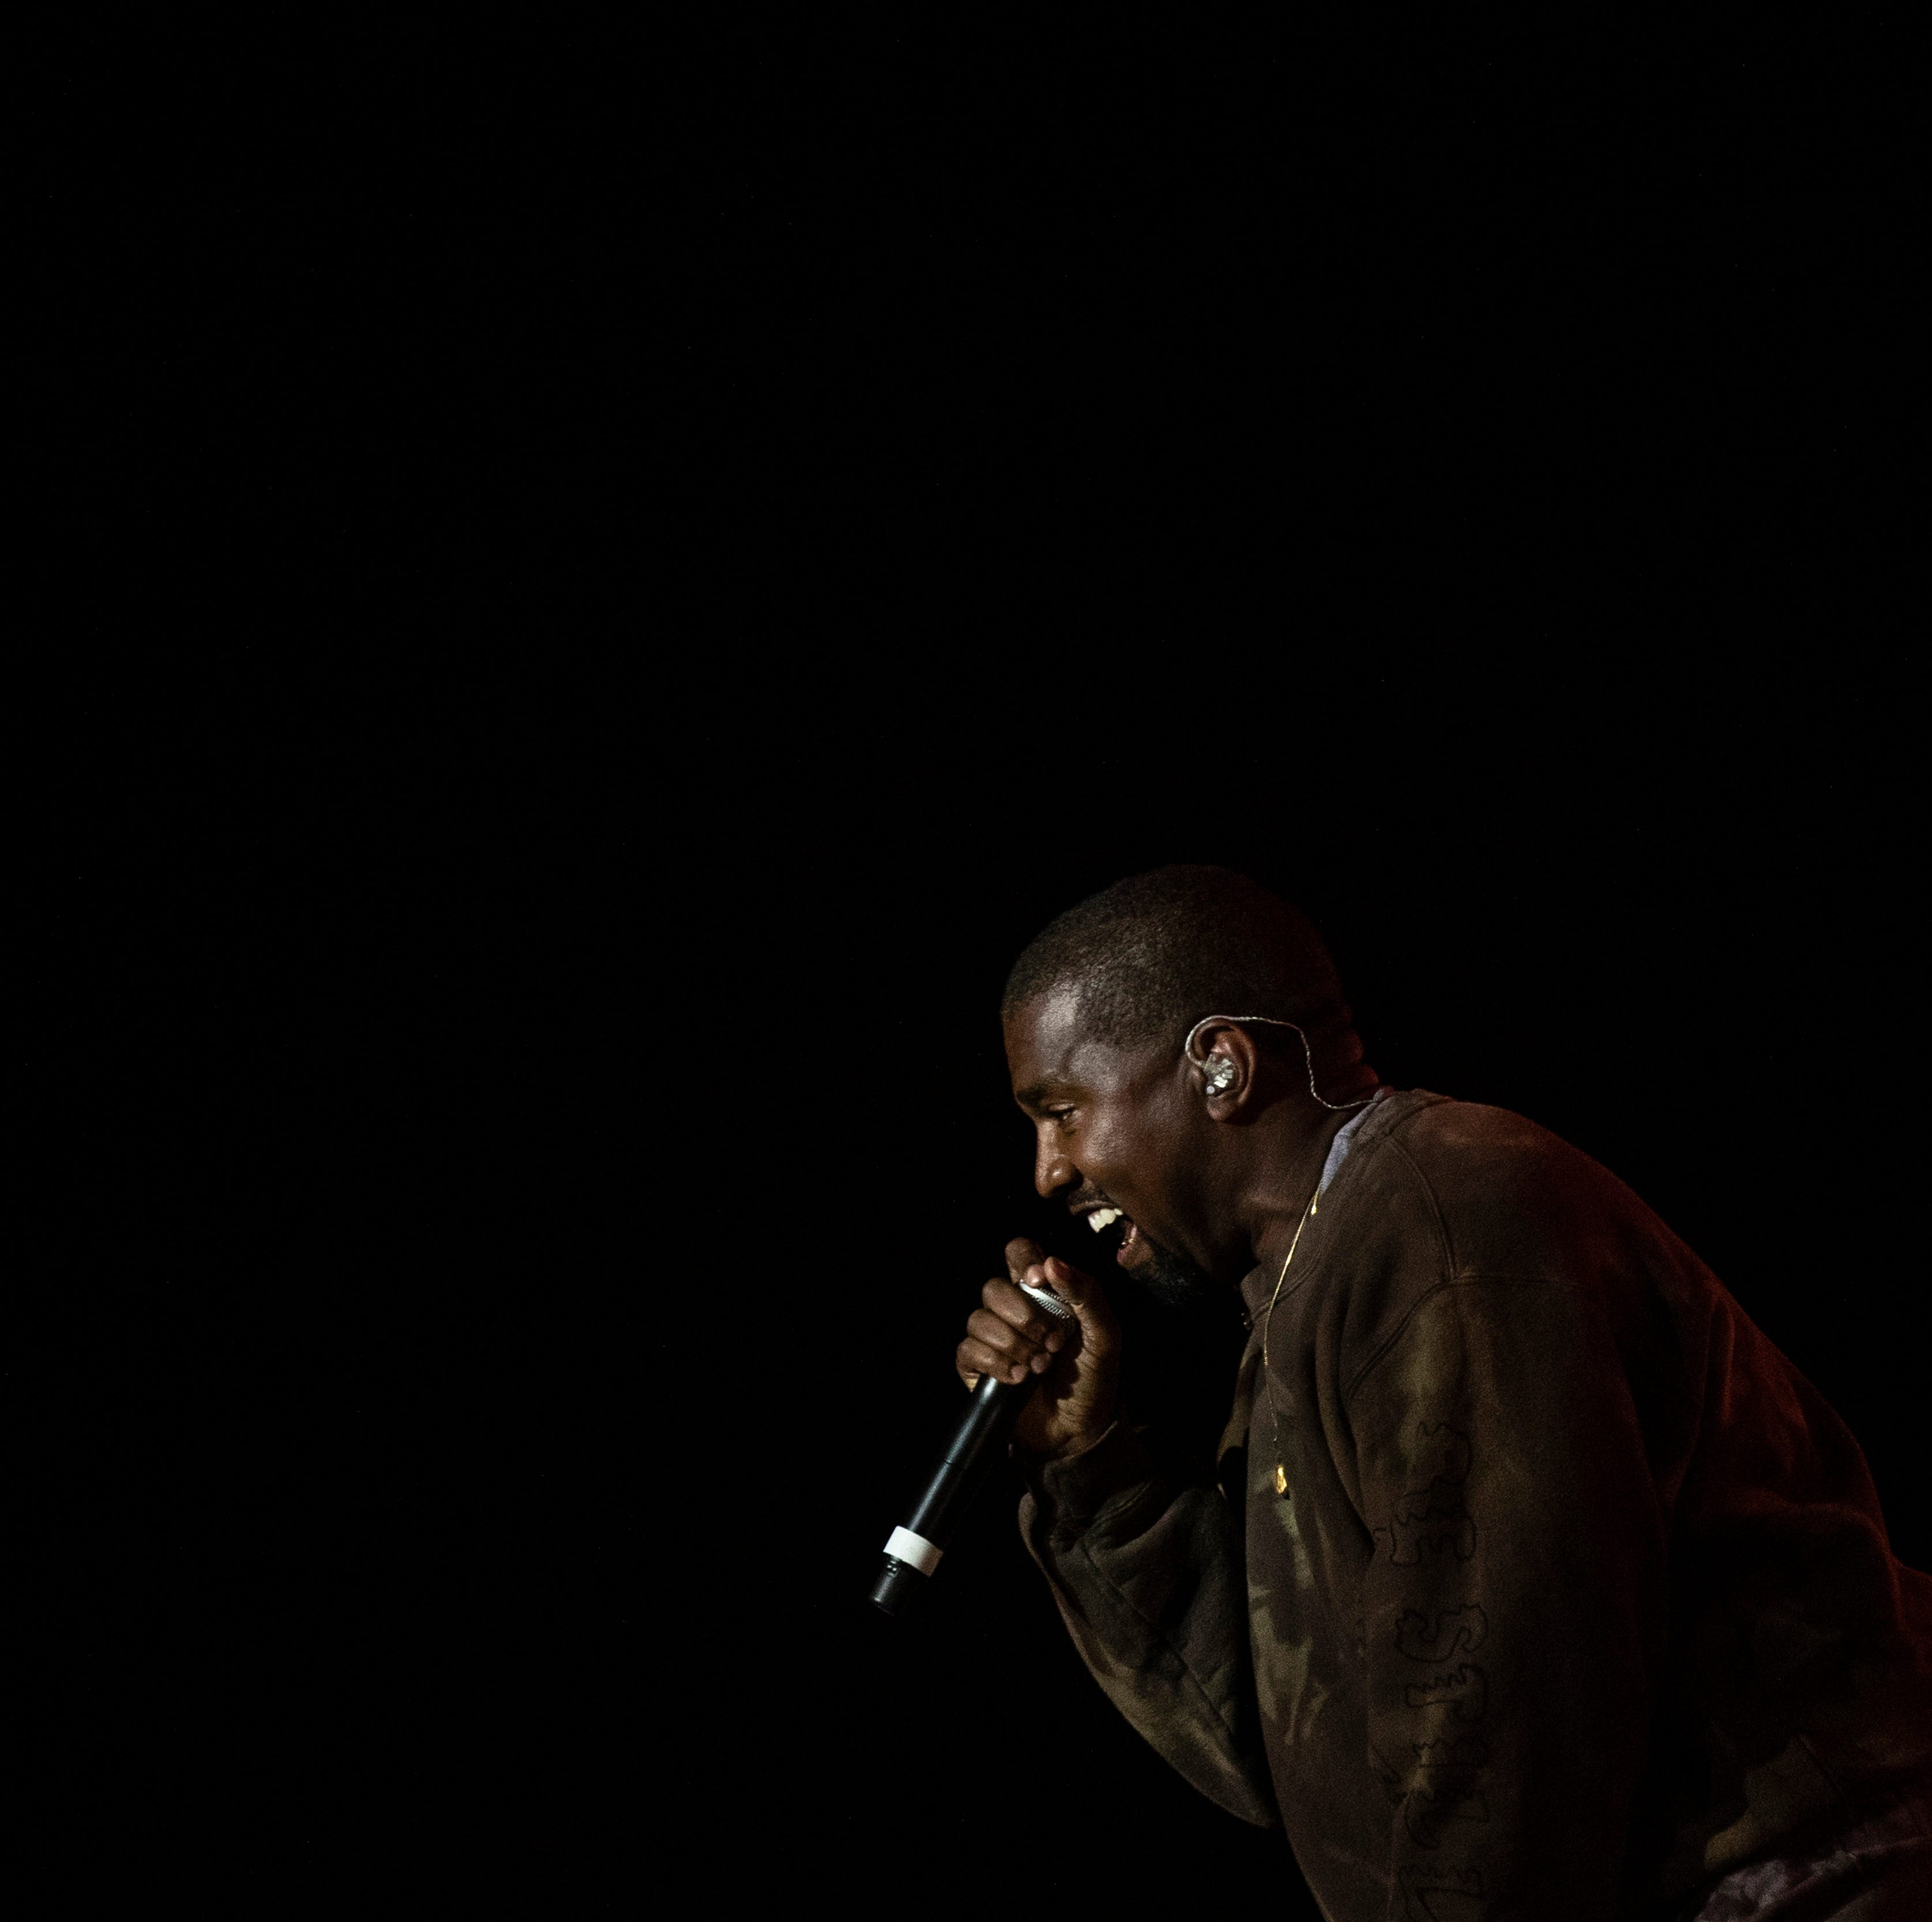 Kanye West performs as a surprise guest of Kid Cudi during the Coachella Valley Music and Arts Festival in Indio near Palm Spring, California, USA, late 20 April 2019.